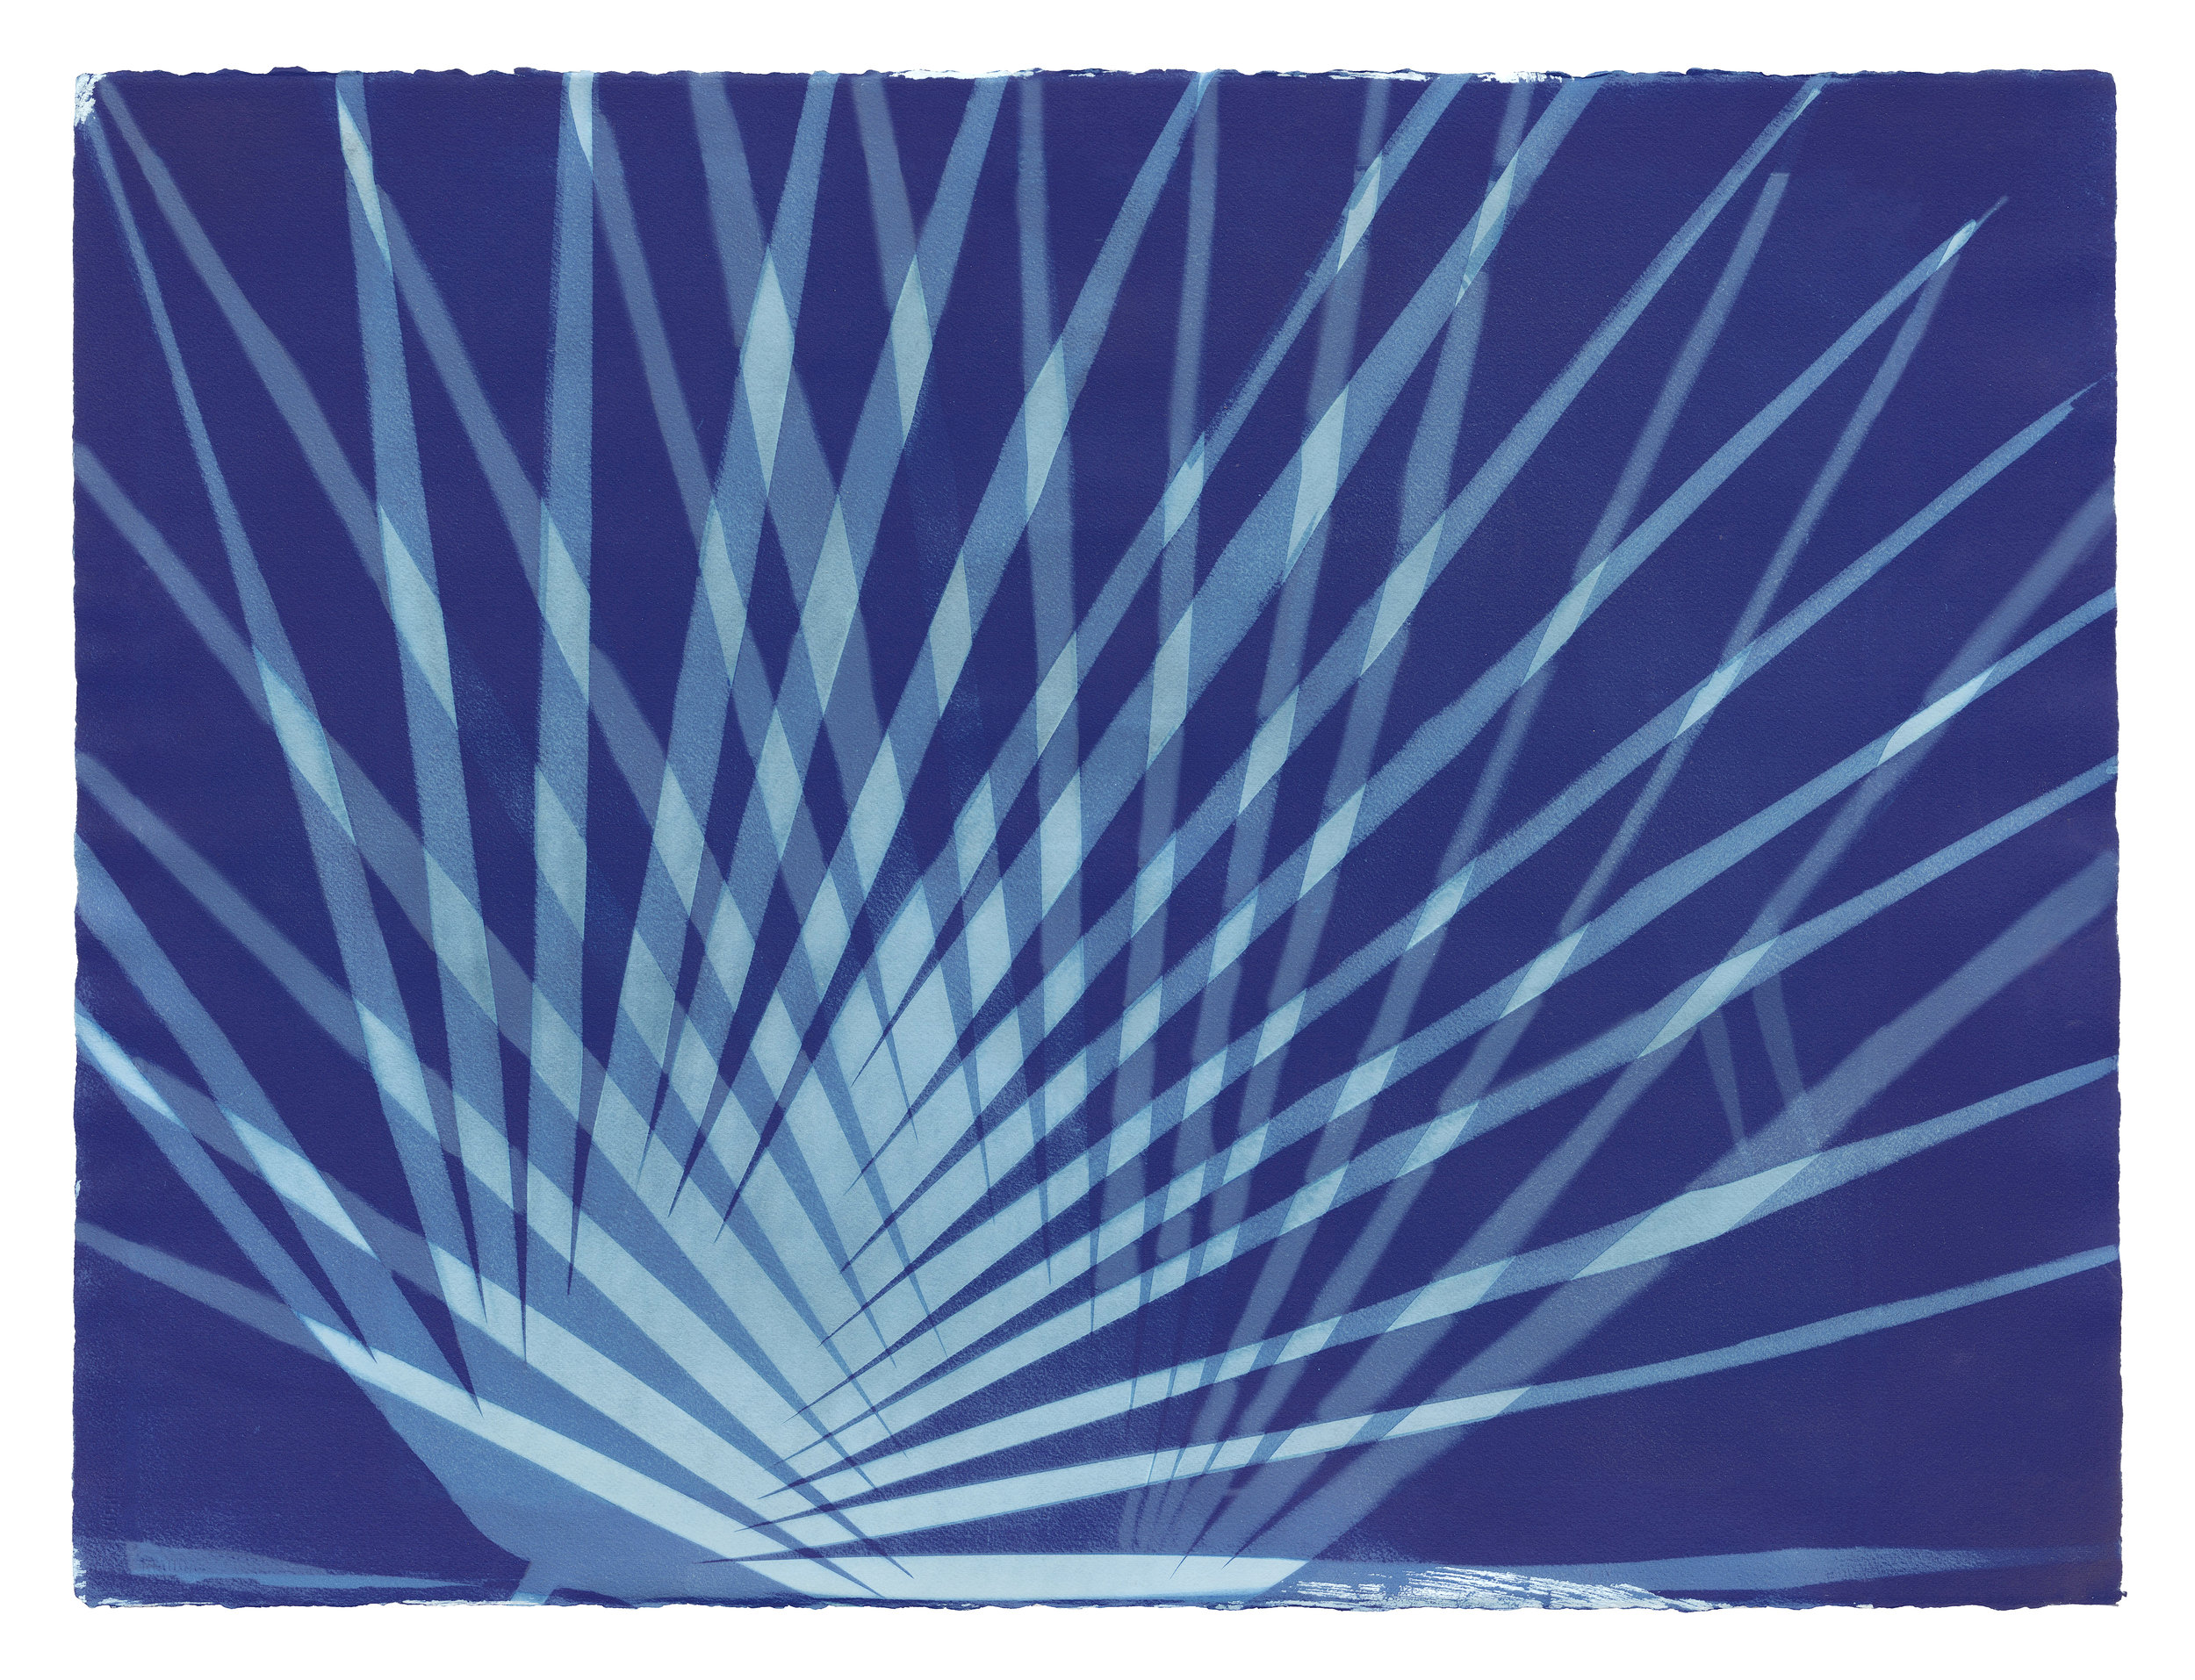 Erica Gimson. Textile cyanotype print. Erica had a two person exhibit here in March/April along with her husband Sean Livingstone (paintings) and we are delighted they both left behind a small number of works